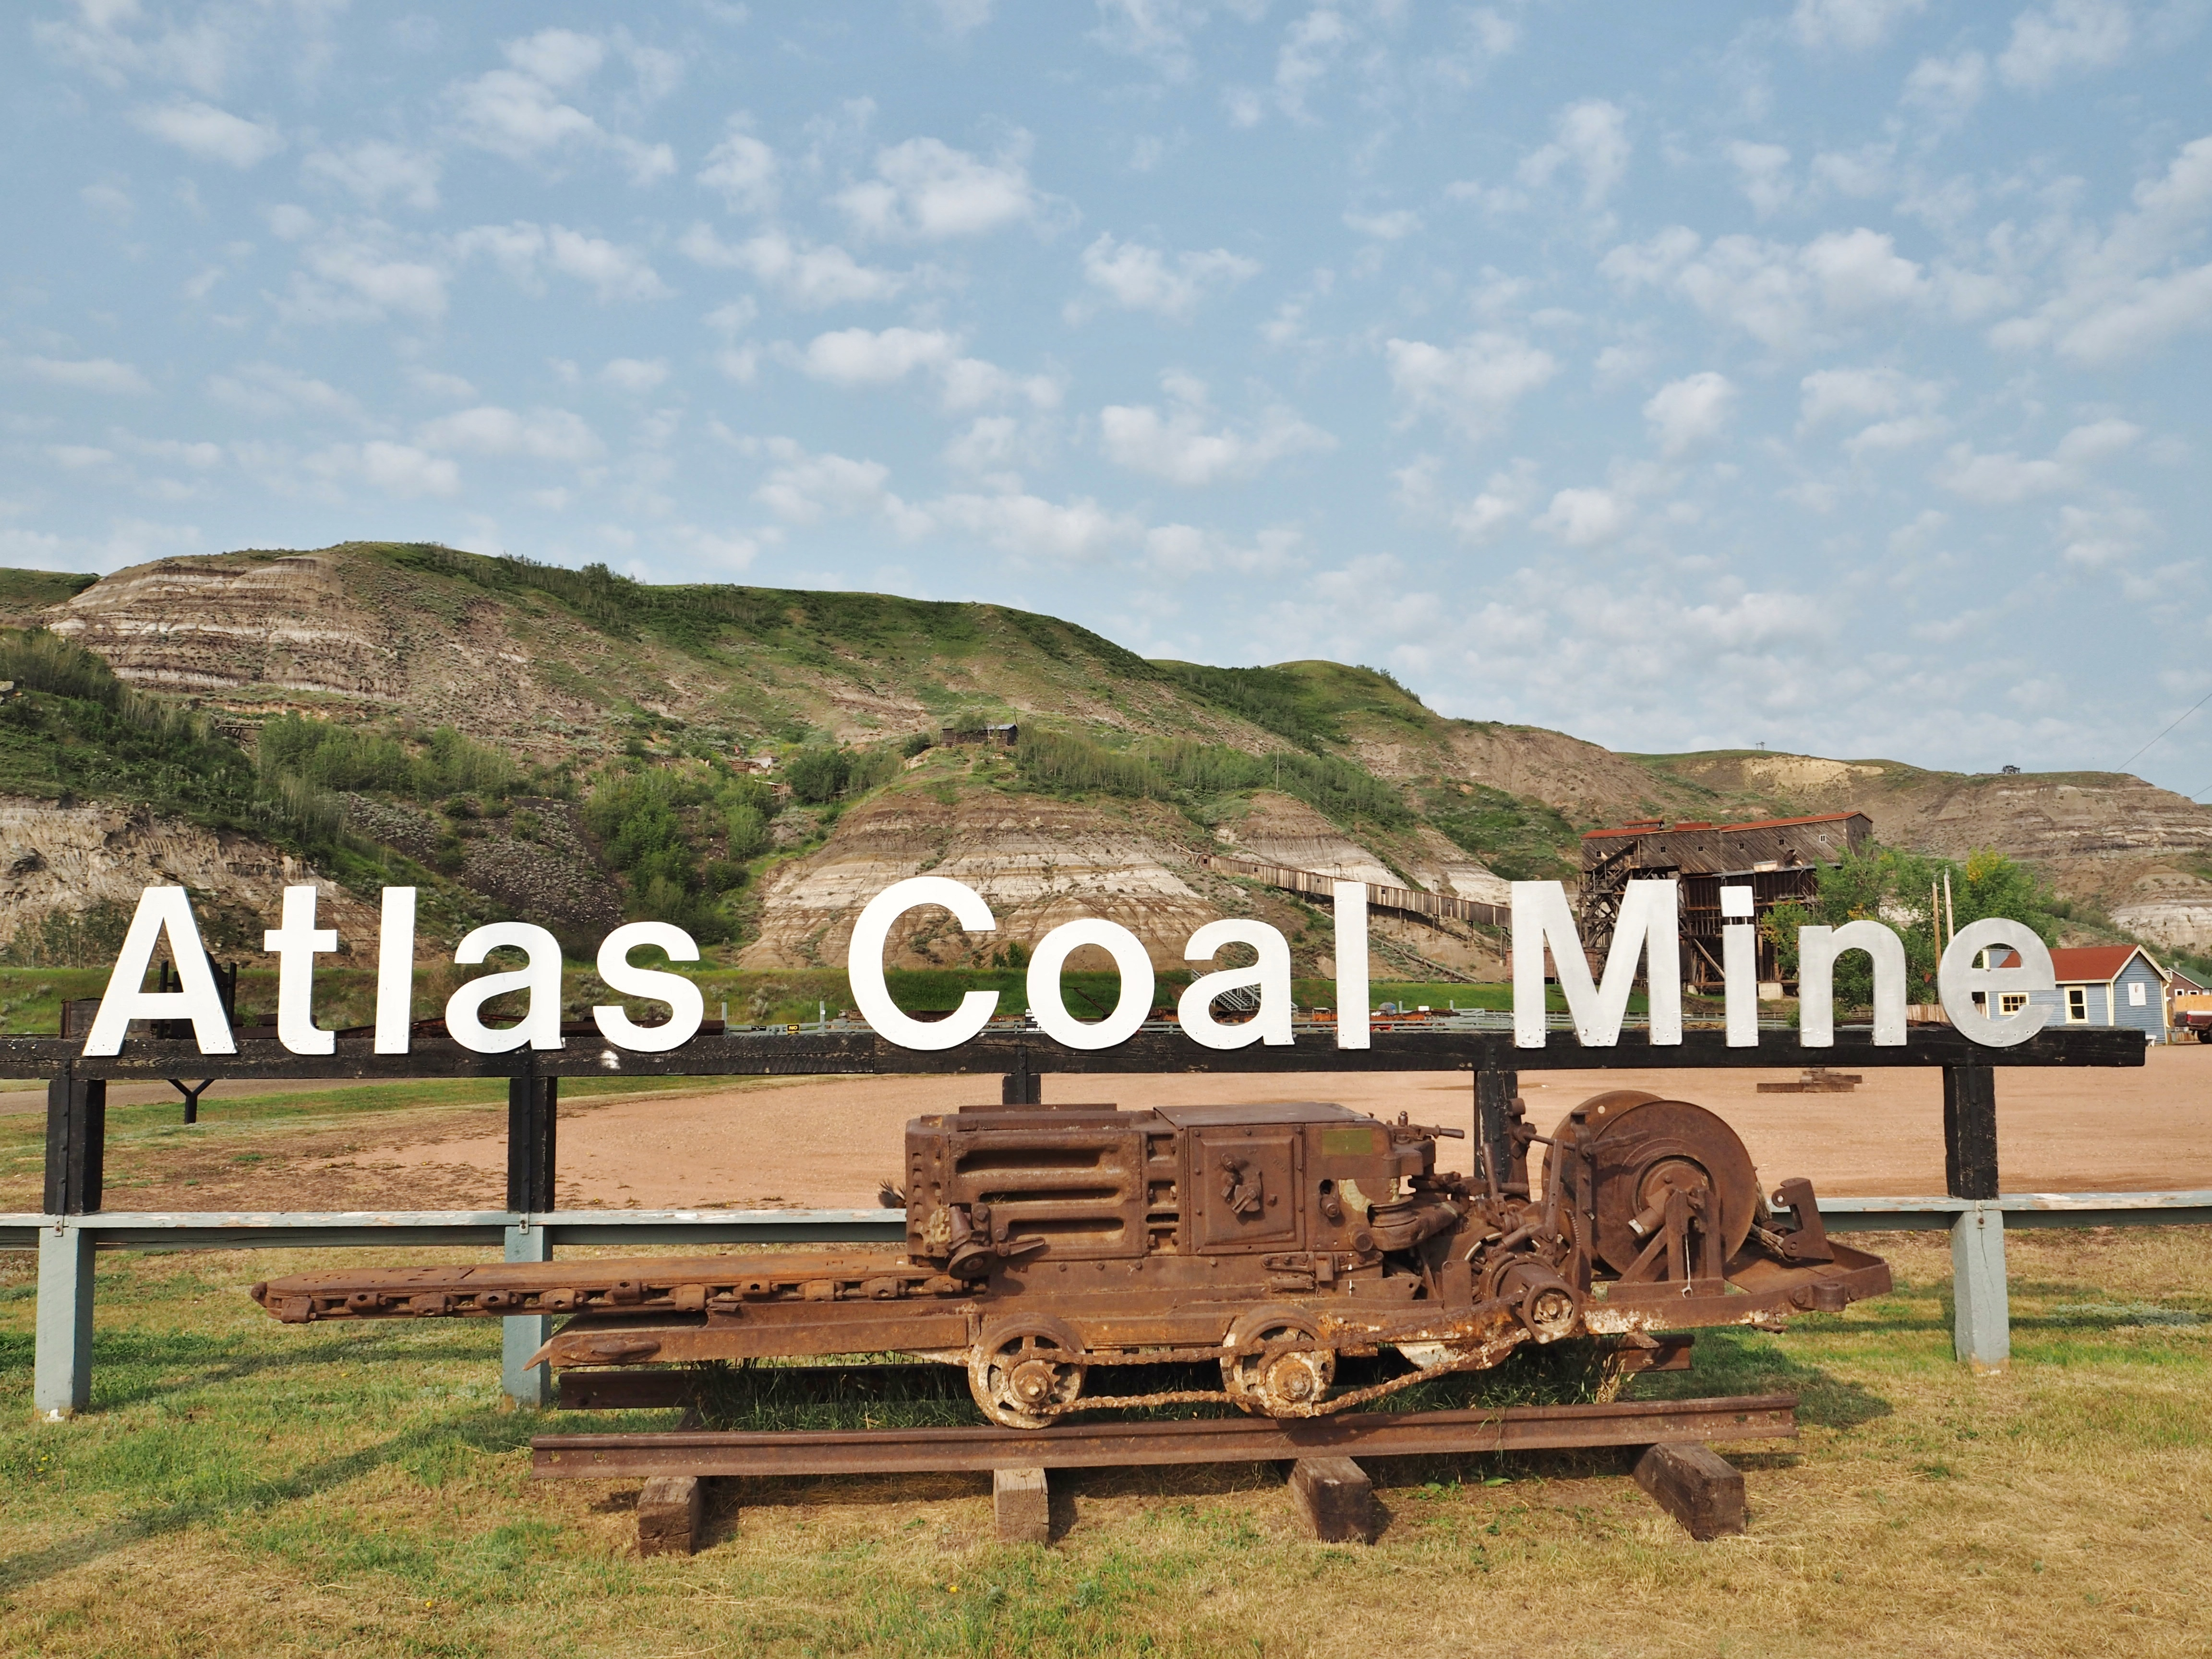 Touring around the Atlas Coal Mine